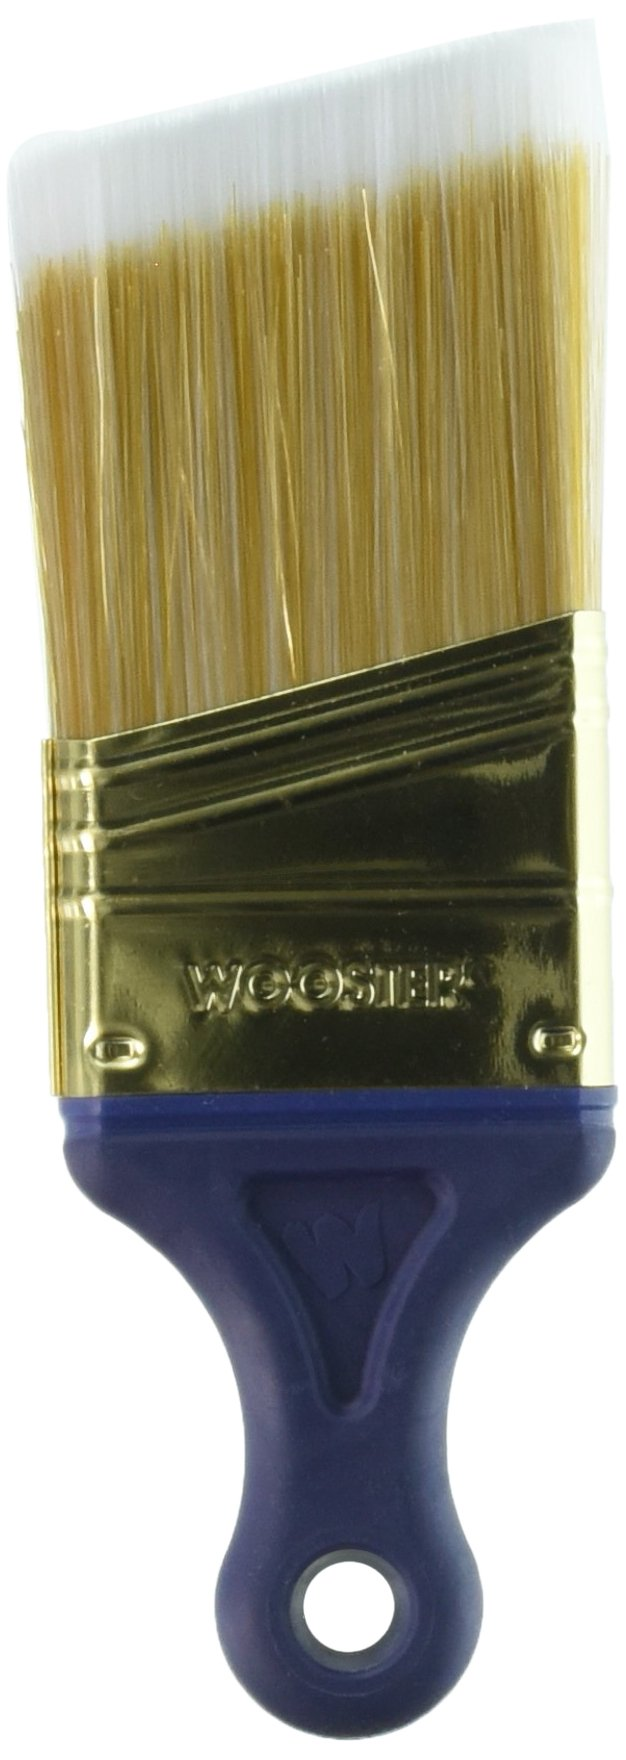 Wooster Brush Q3211-2 Shortcut Angle Sash Paintbrush, 2-Inch - Pack of 3 by Wooster Brush